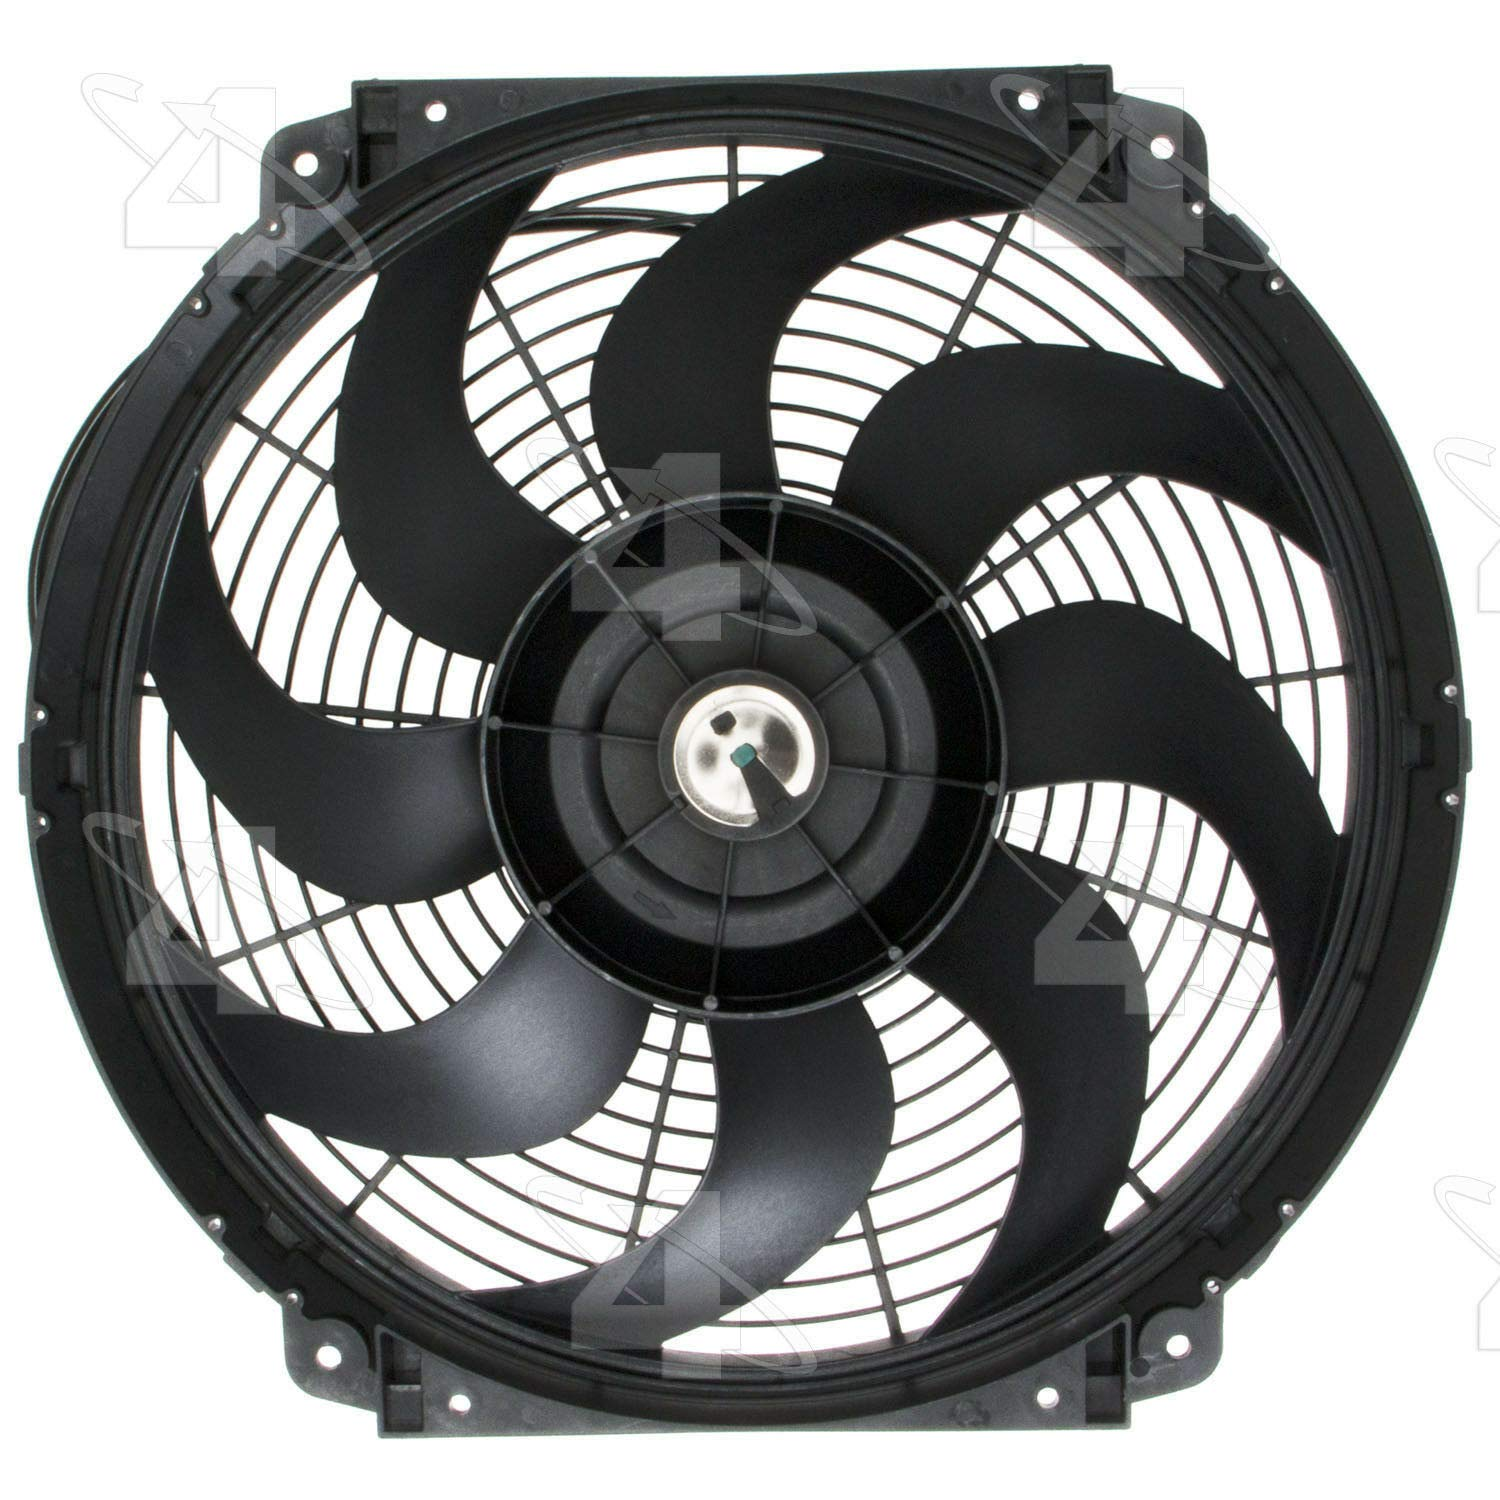 Four Seasons 36898 Reversible Fan Kit